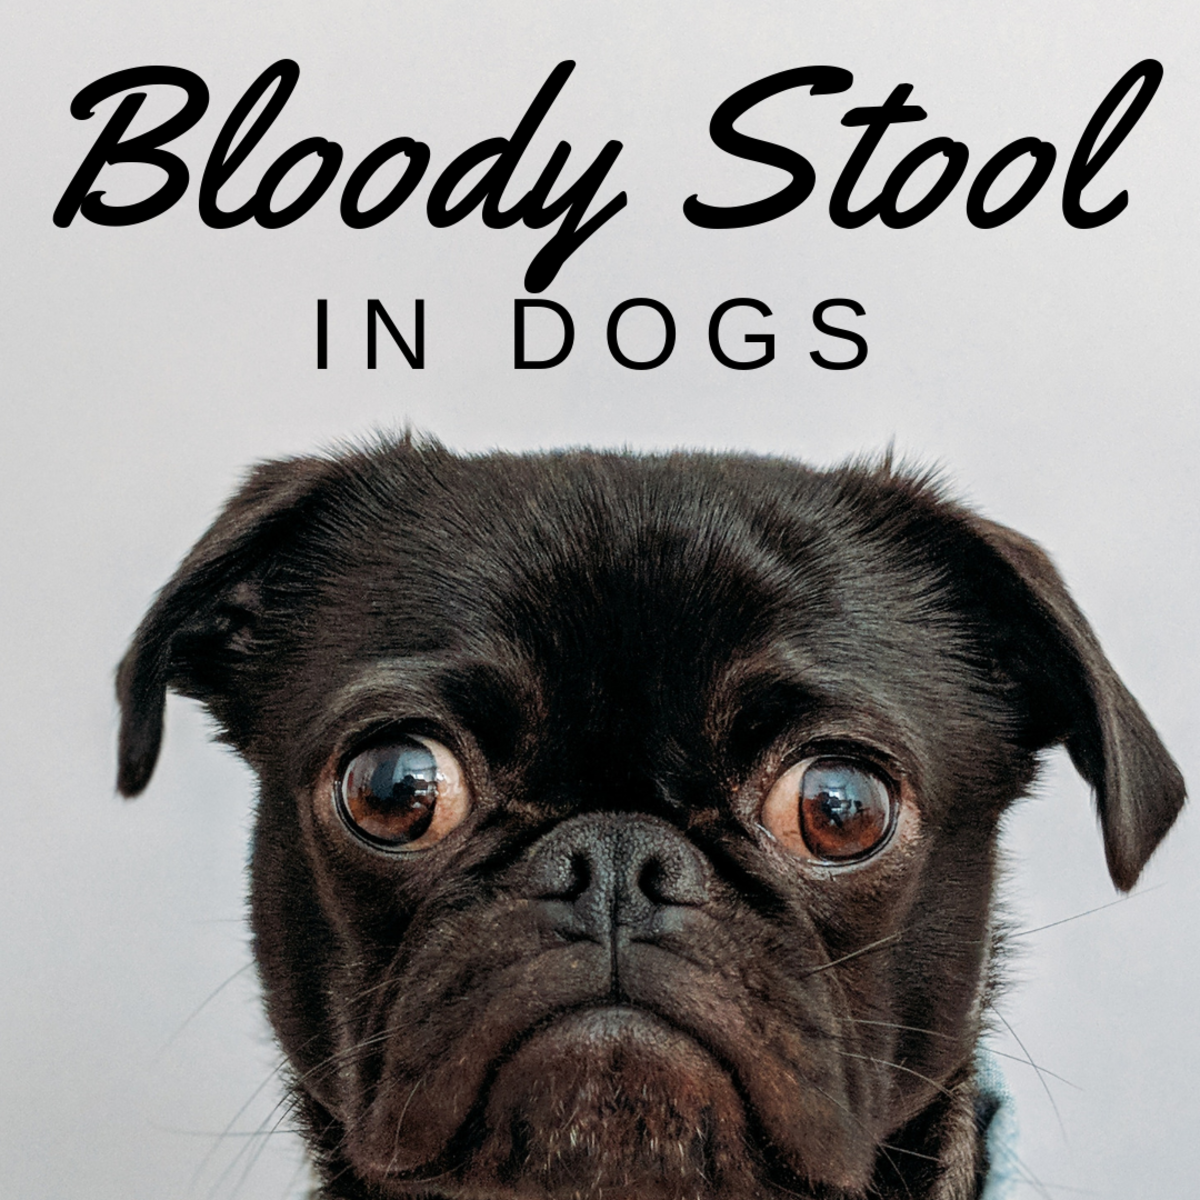 Blood in My Dog's Poop: Causes and Treatment